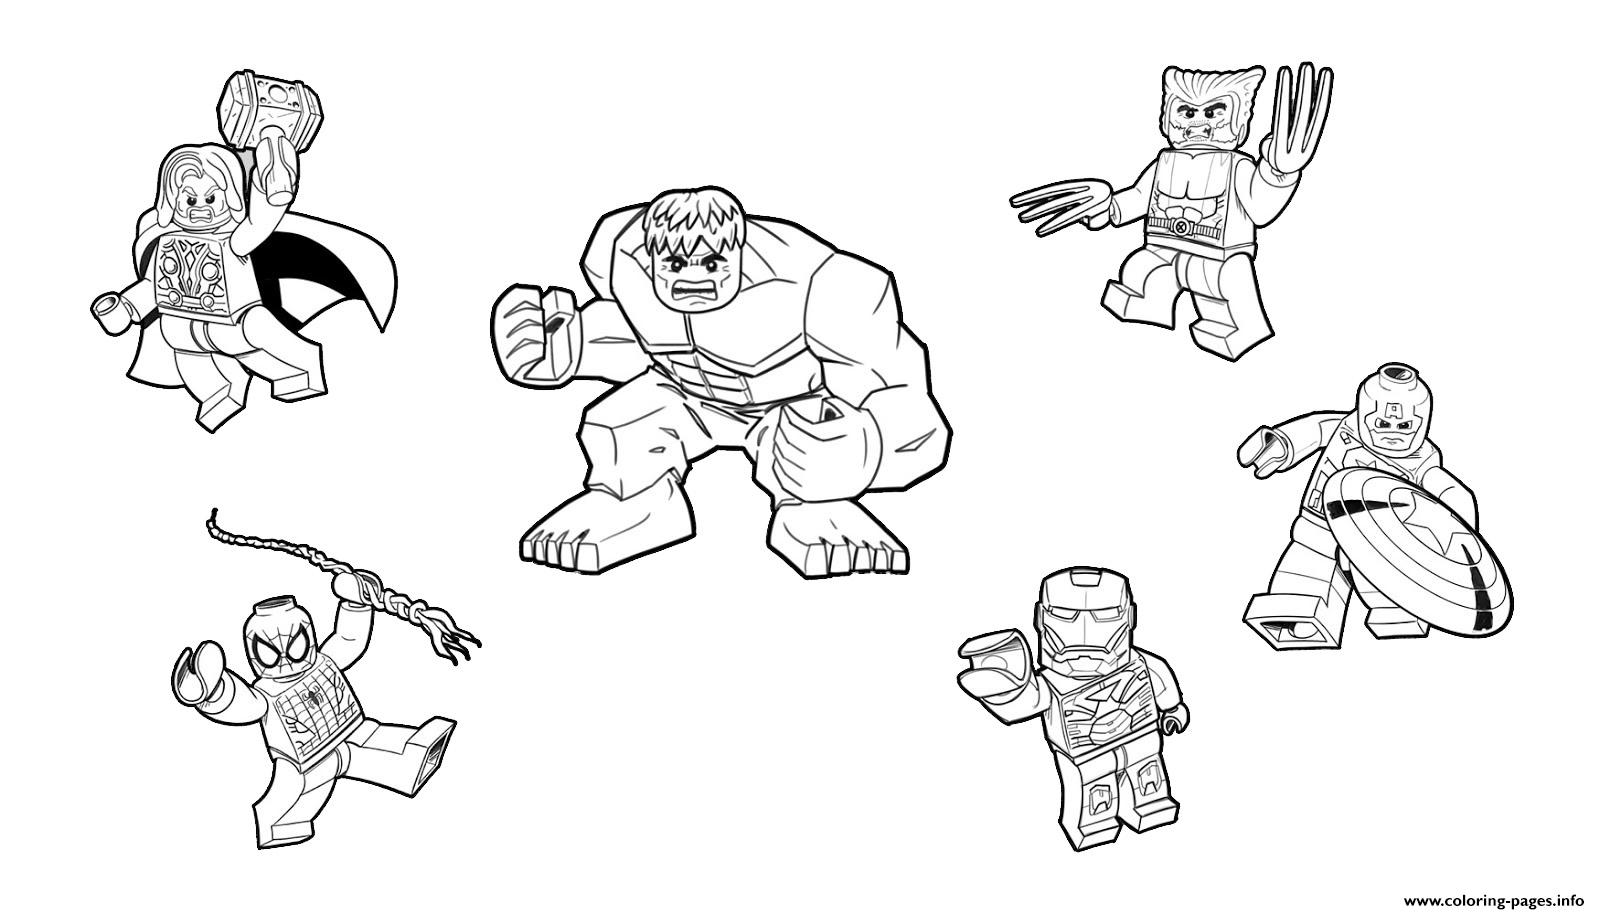 Team Lego Marvel Hulk Ironman Spiderman Thor America Wolverine Coloring Pages Print Download